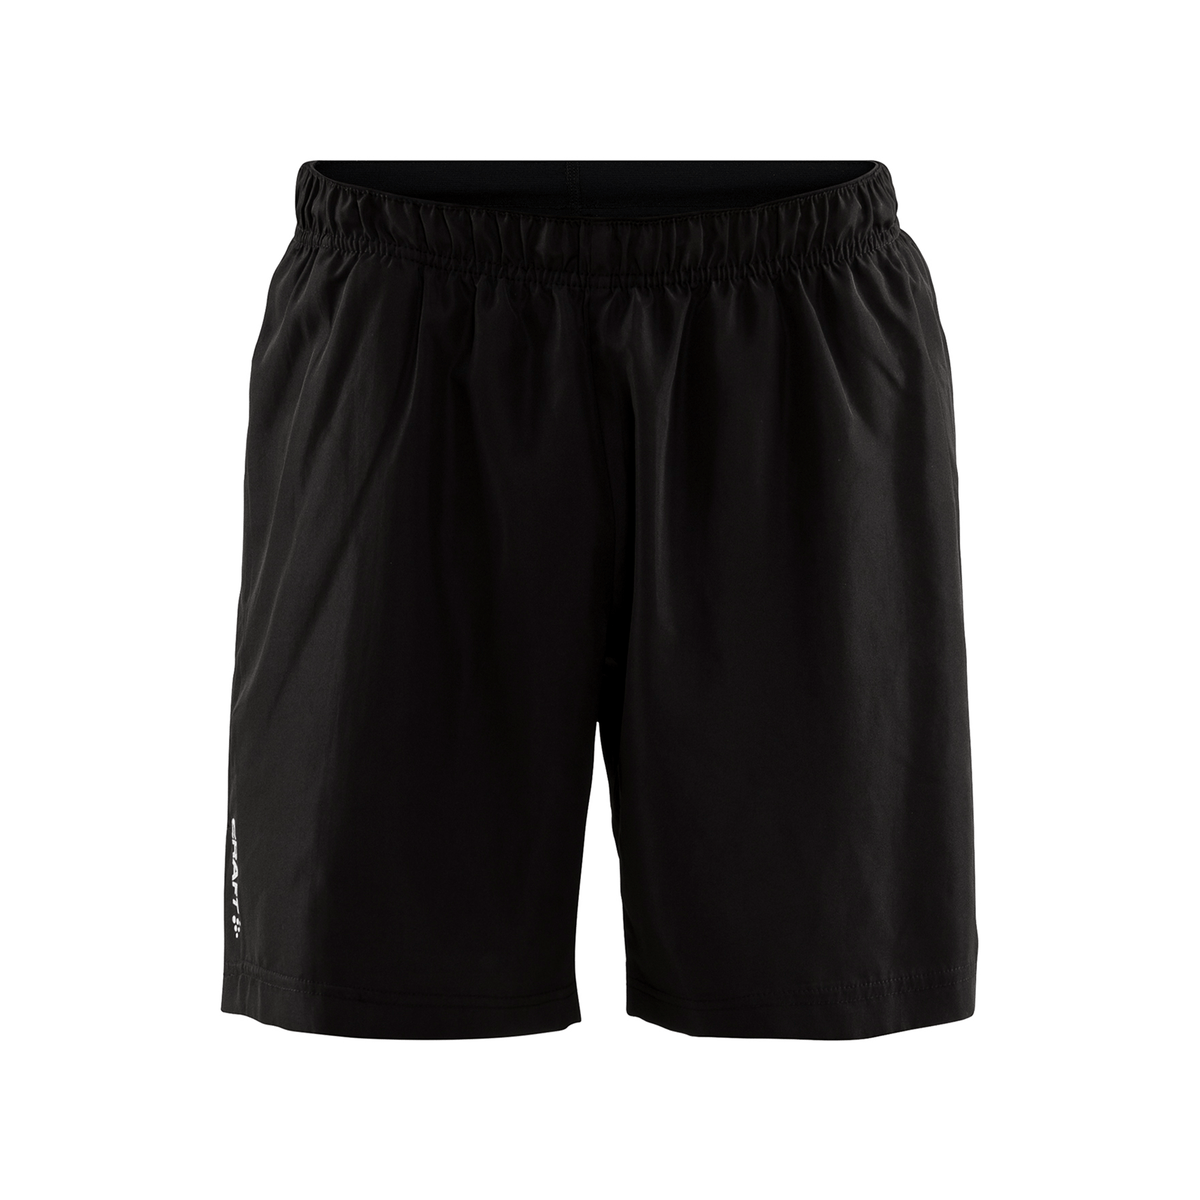 Men s Eaze Woven Training Shorts – Craft Sportswear NA d620033a9edb9